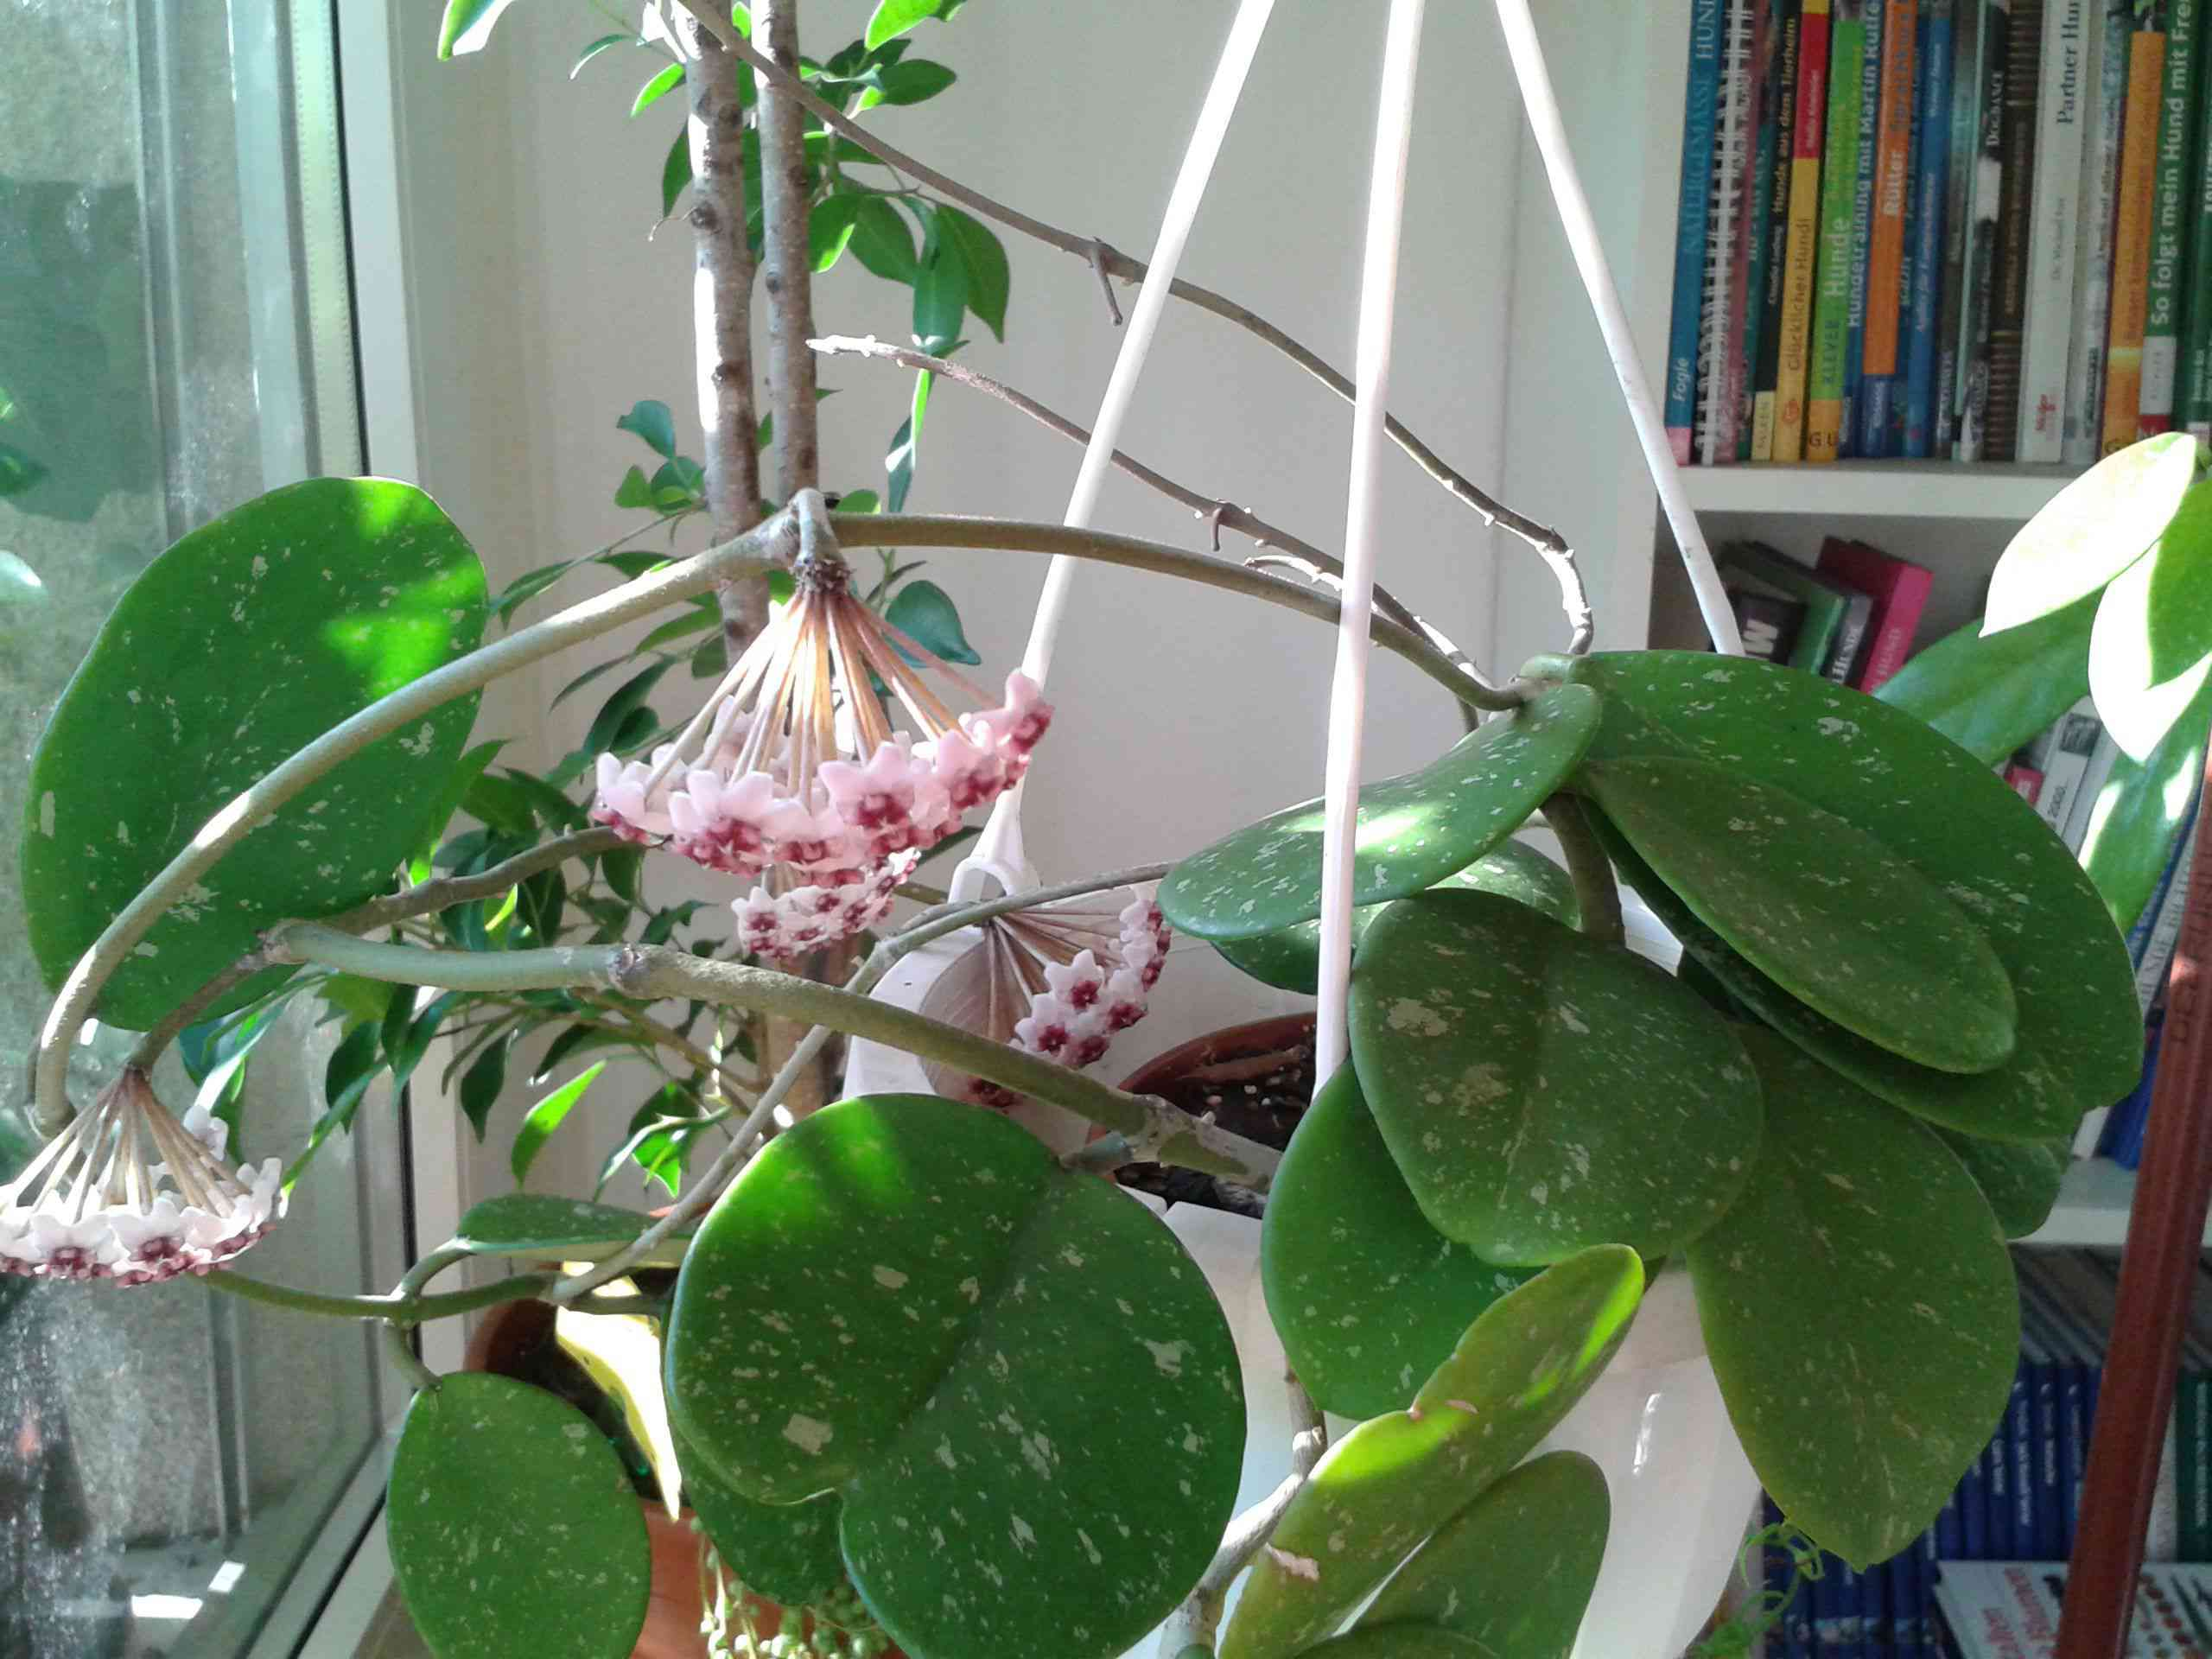 Hoya obovata hanging with flowers and large round leaves